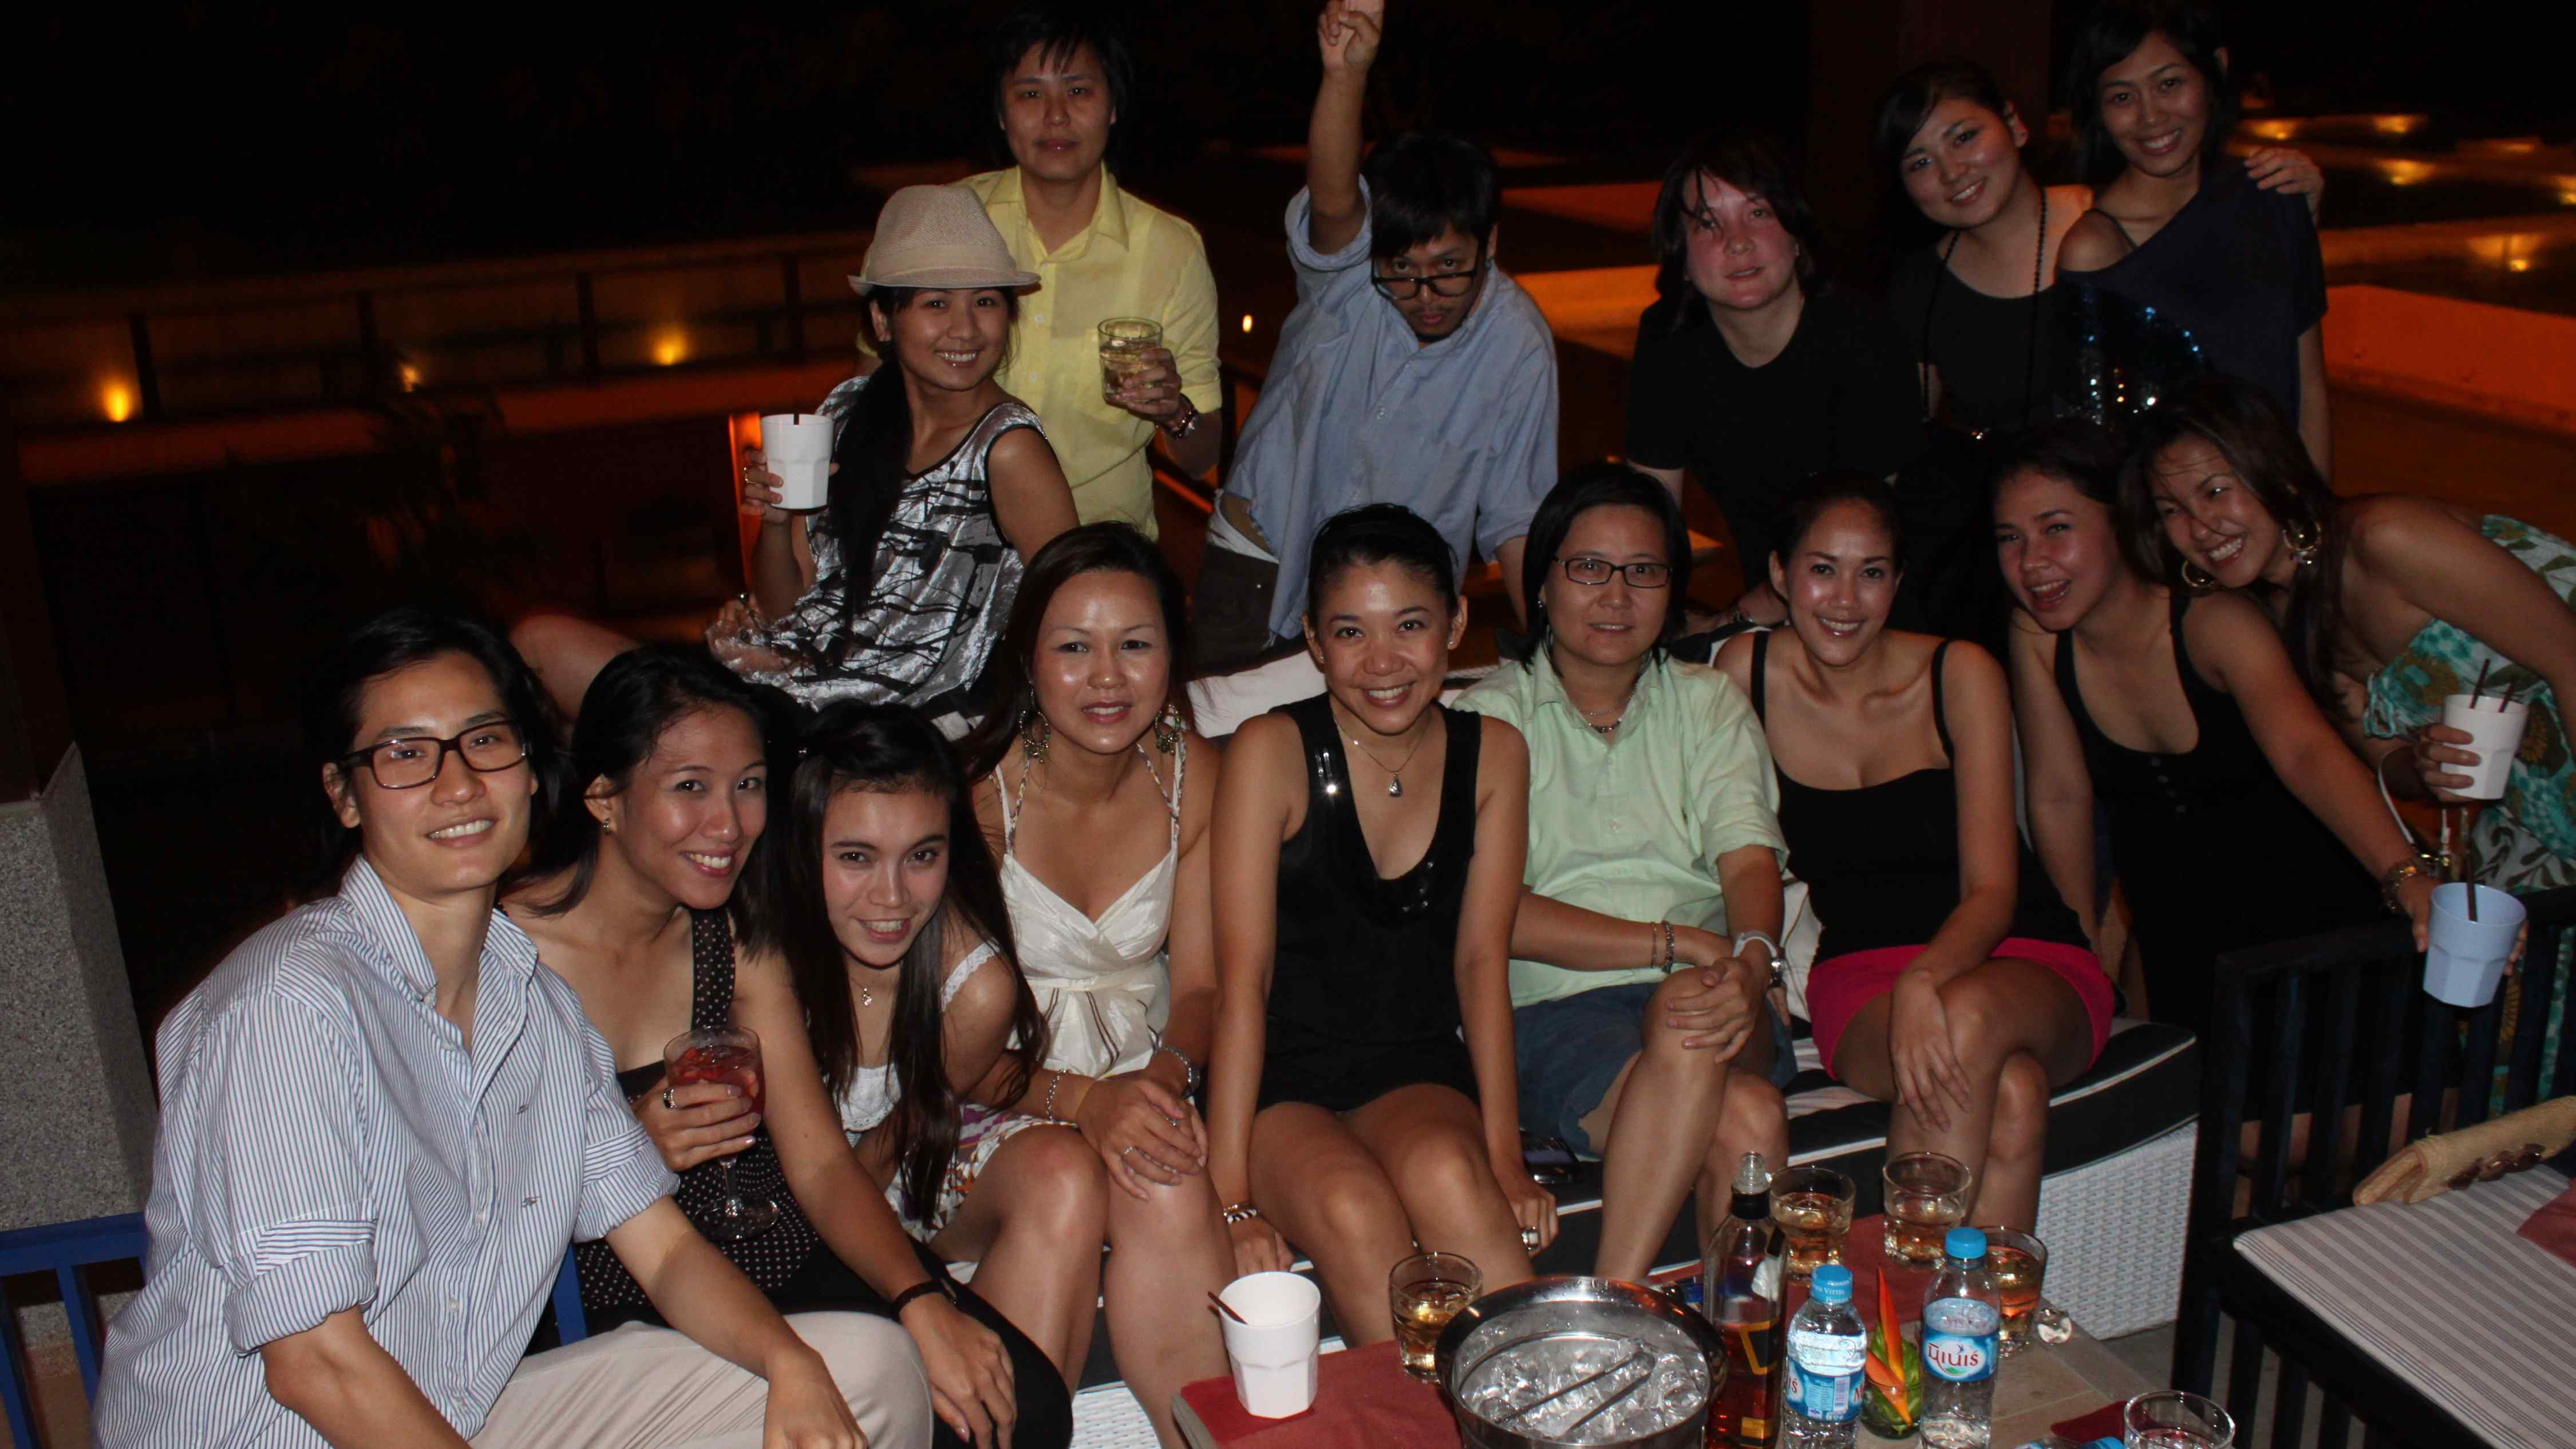 Sri-Panwa-Hotel-Pool-Villa-Phuket-Sweet-Sexy-Spicy-decked-out-Party-Event